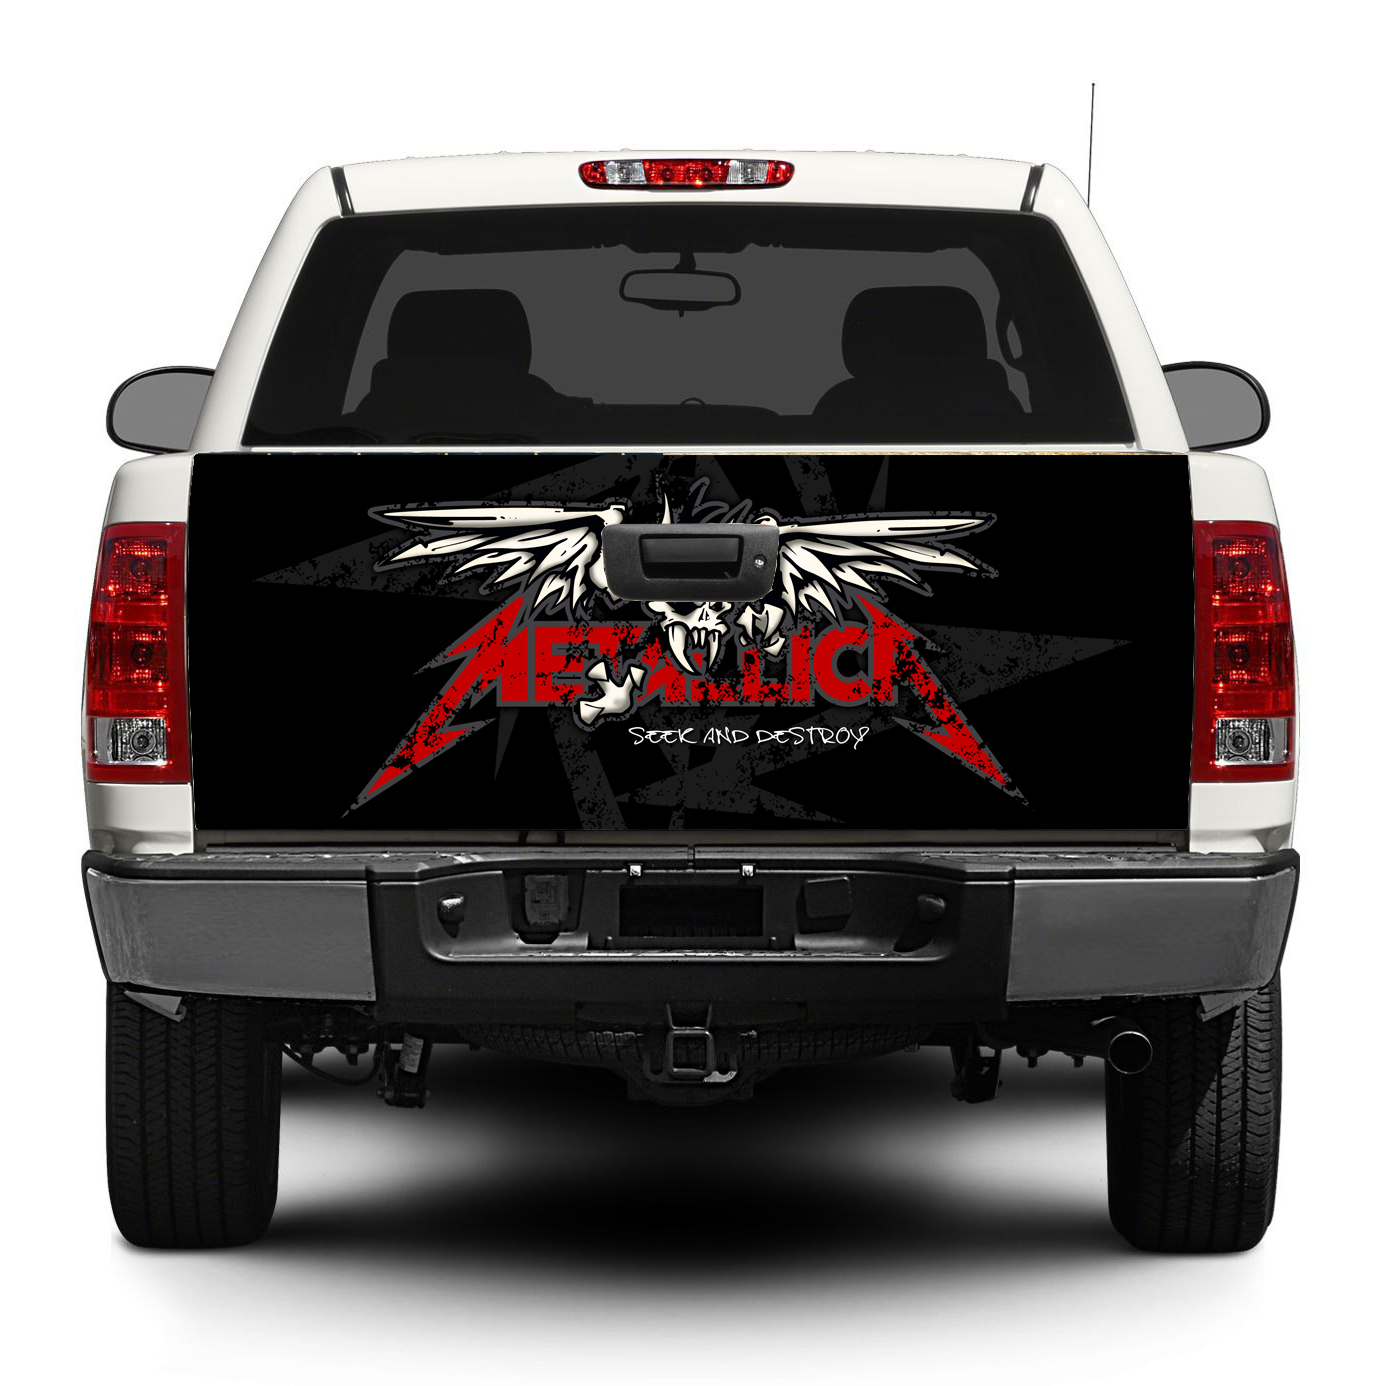 Metallica trash metal rock tailgate decal sticker wrap pick up truck suv car